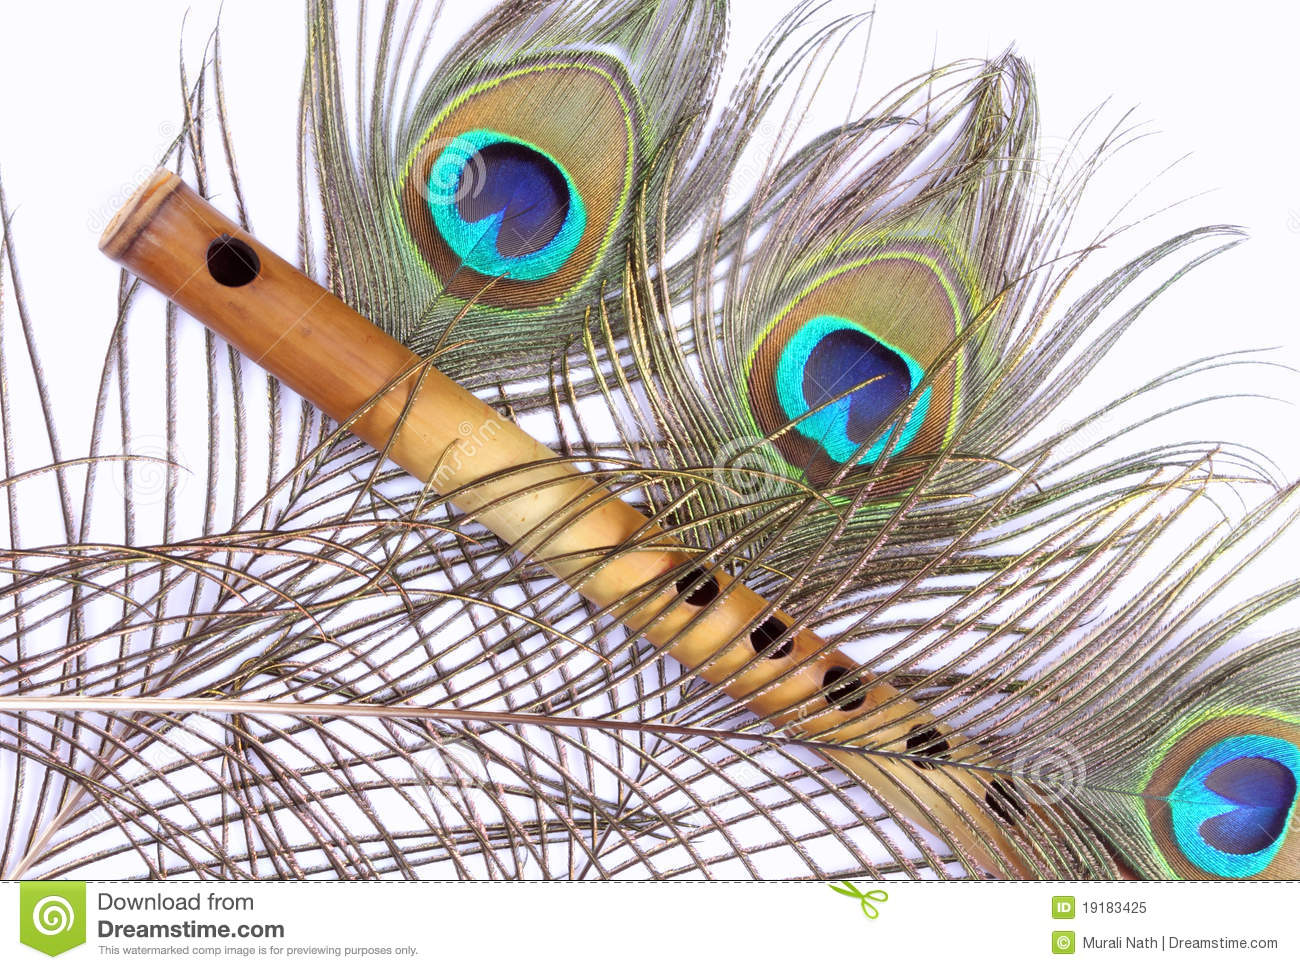 Bamboo flute, peacock feather